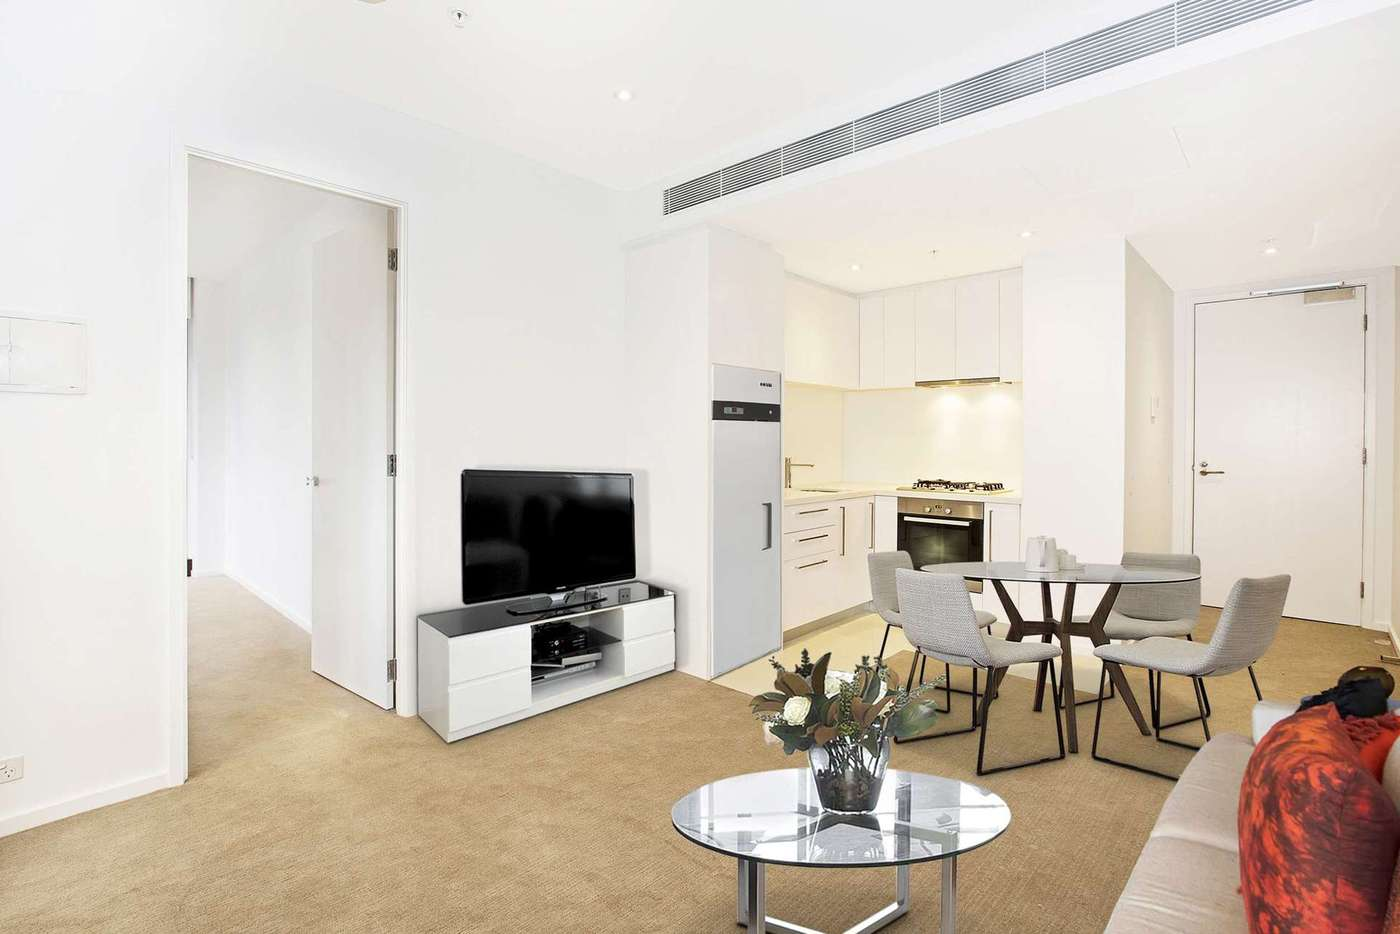 Main view of Homely apartment listing, 3414/9 Power Street, Southbank VIC 3006